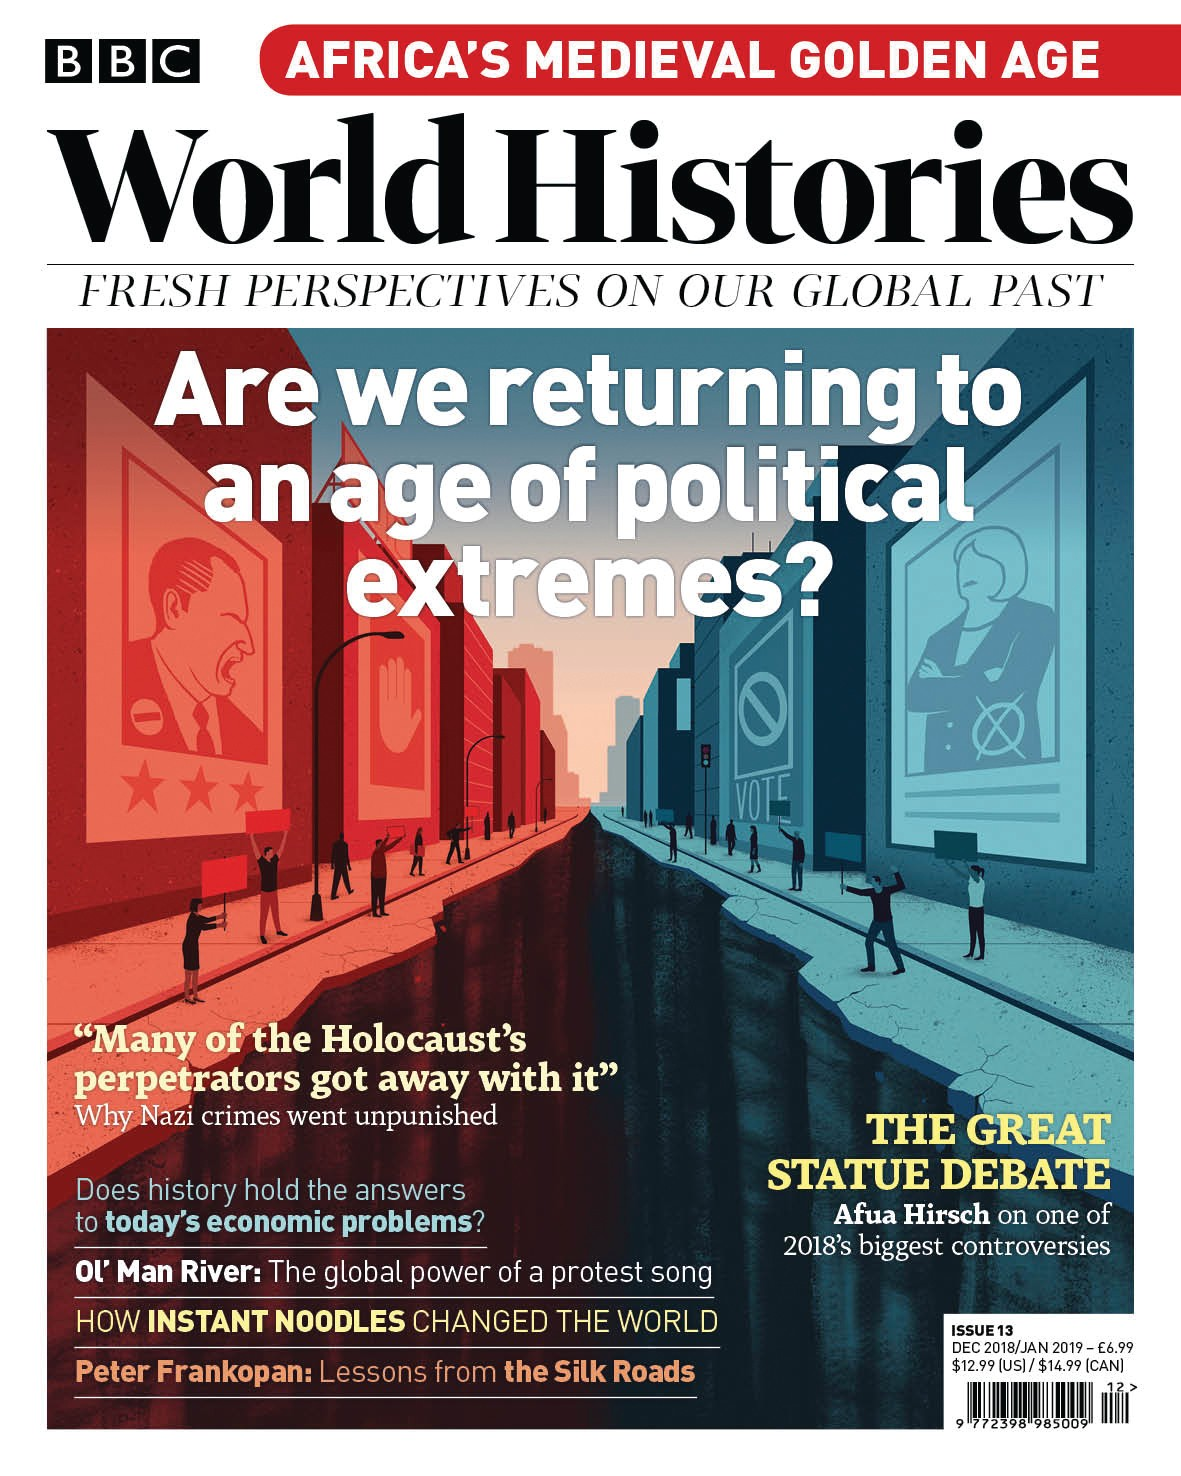 Issue 13 of BBC World Histories magazine